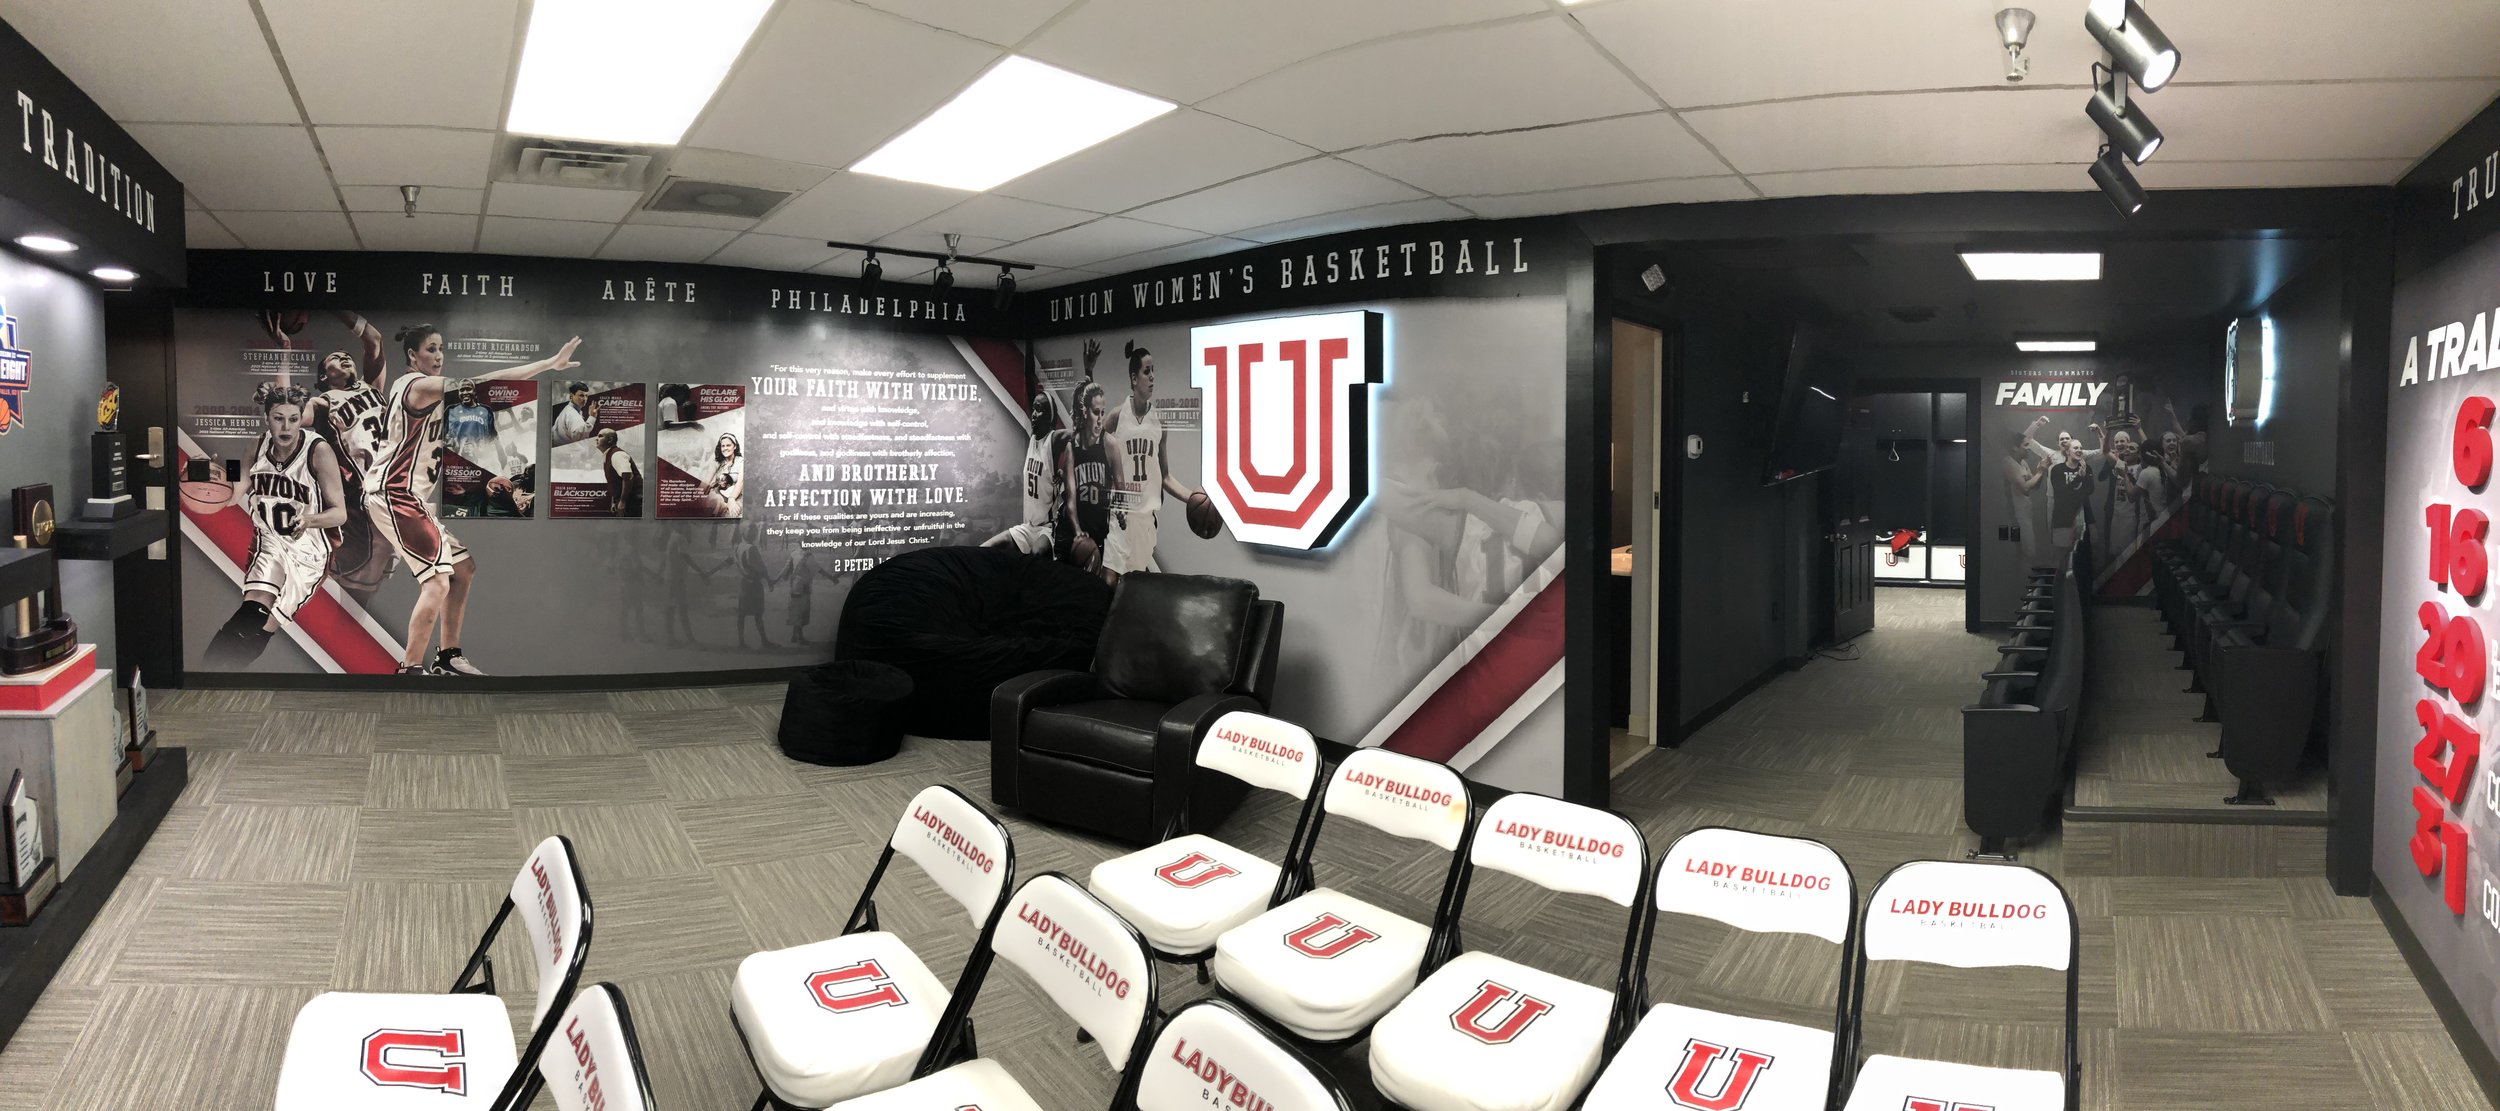 After-Union-University_Womens-Basketball-Locker-Room_Interior-Branding_LSIGraphics_Memphis-TN-17 ..